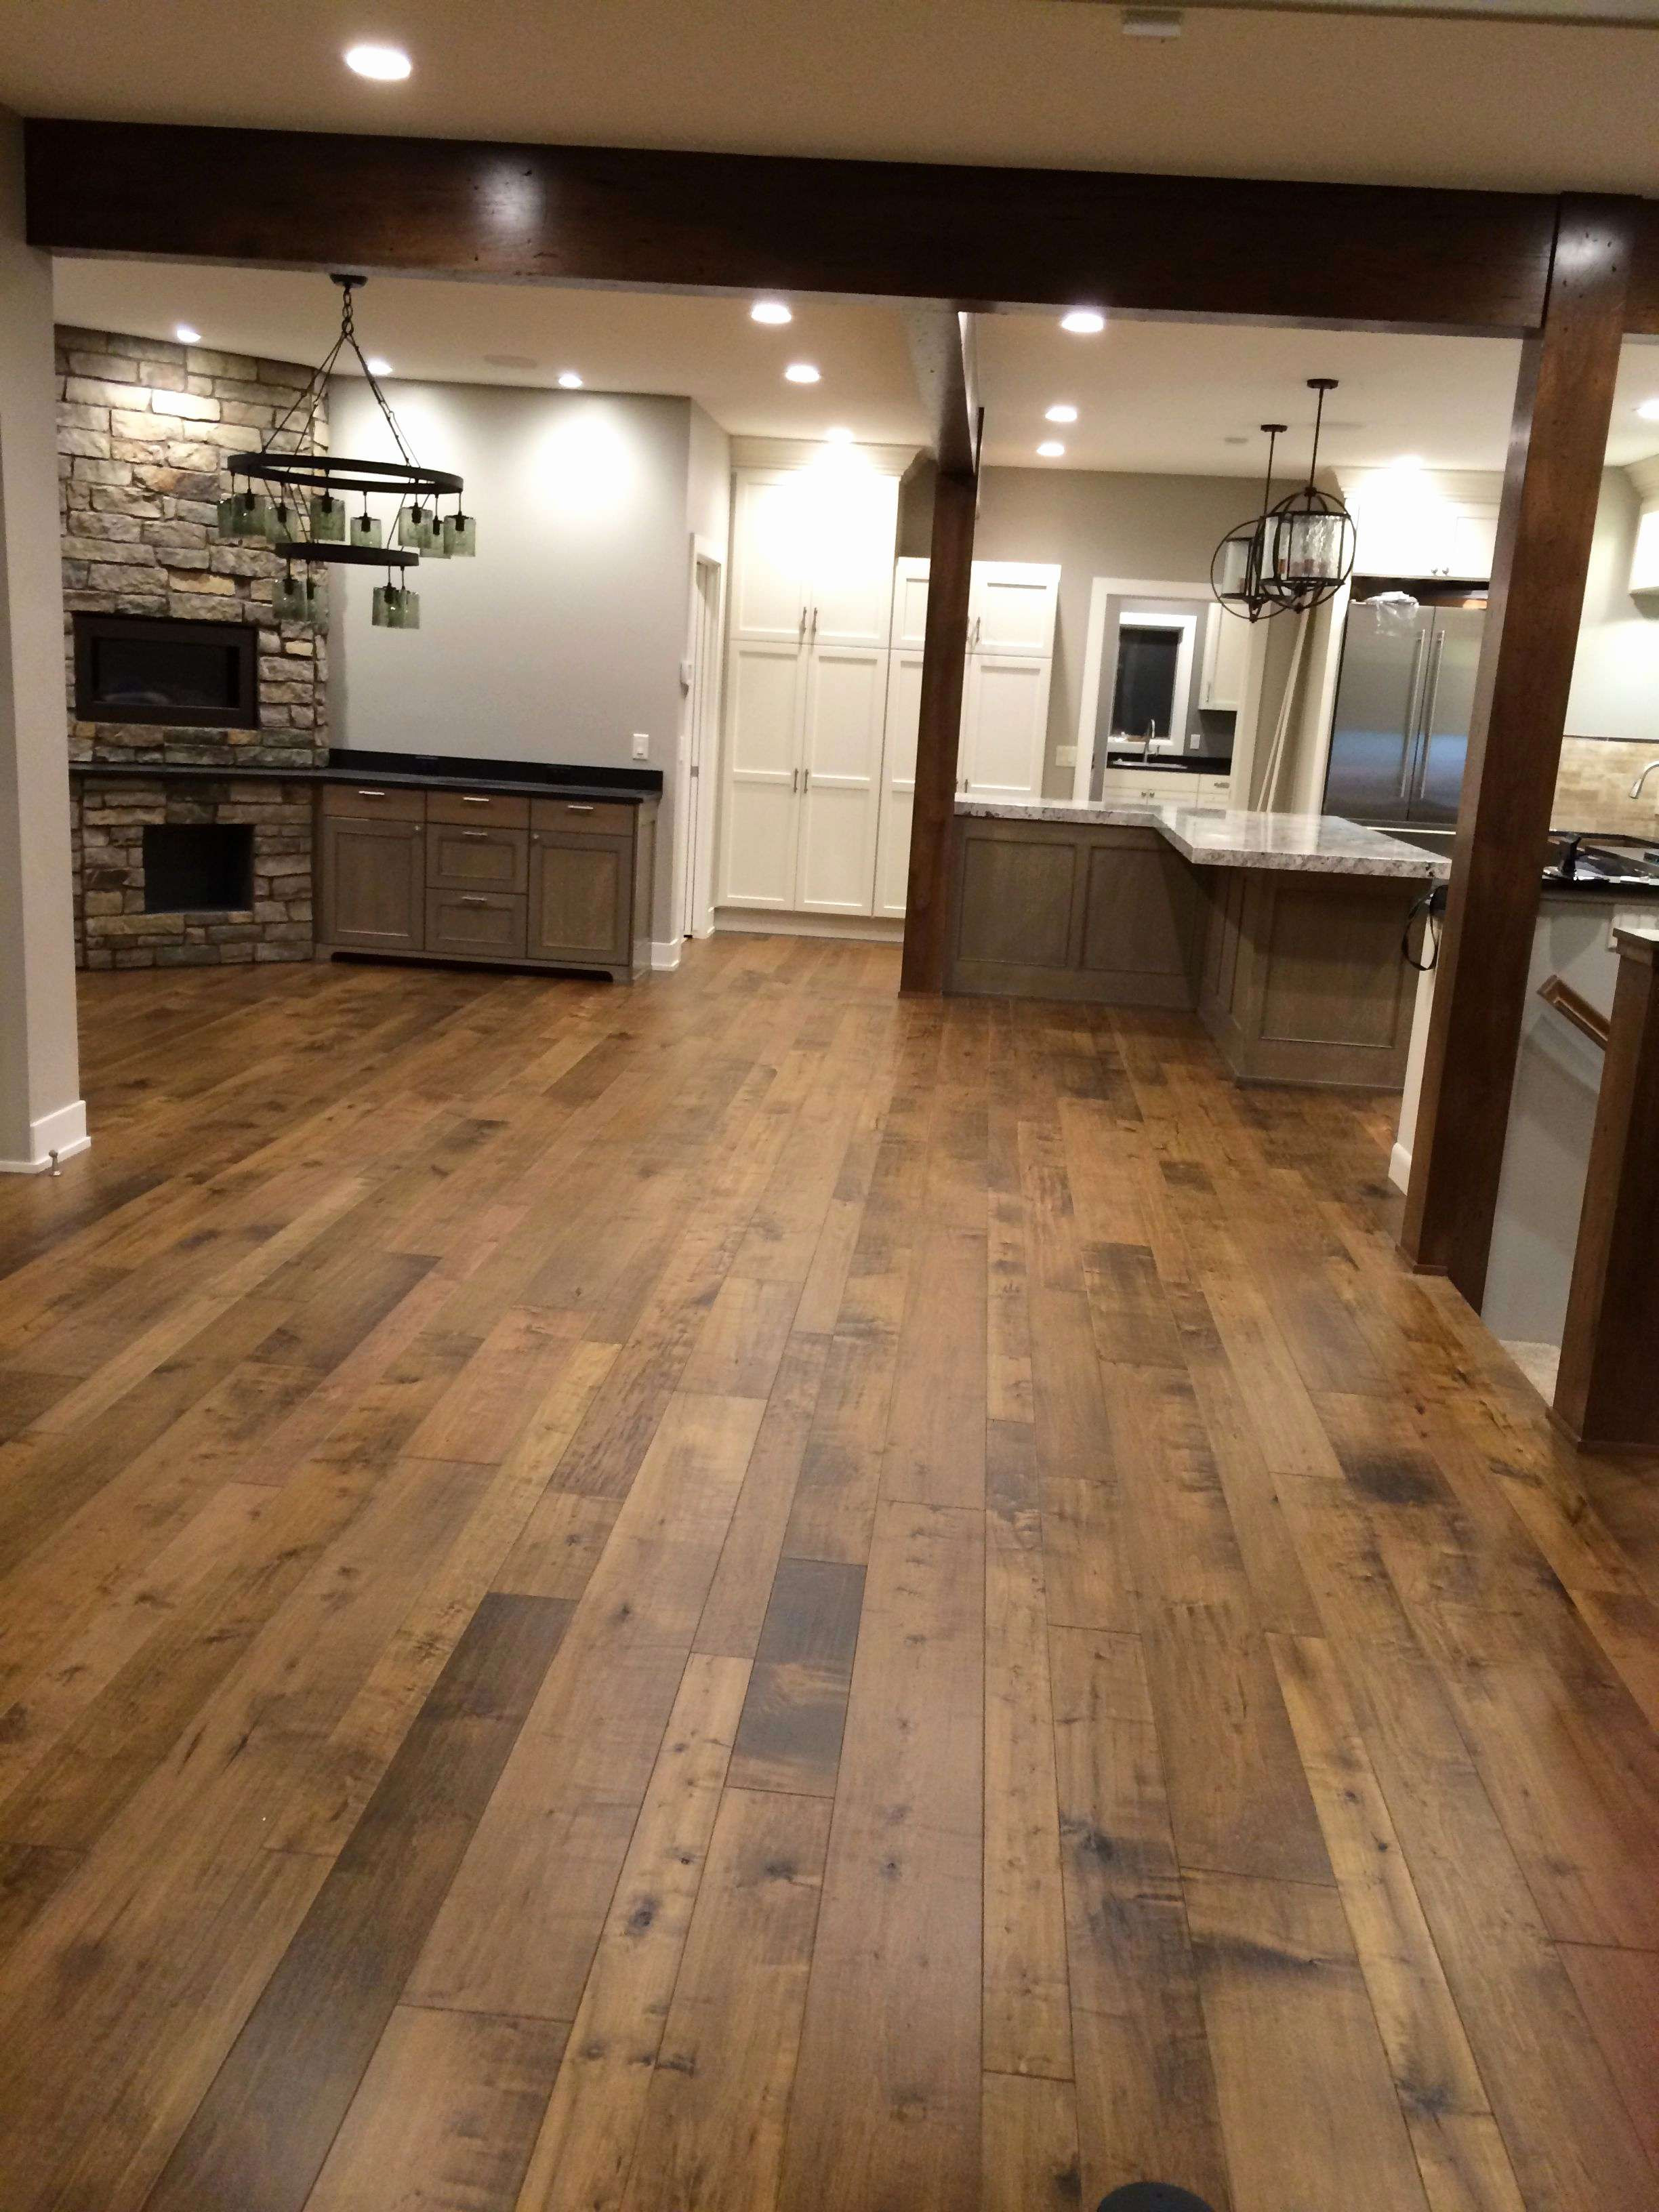 Hardwood Floor Refinishing Cost Per Sq Ft Of 21 Best Images Of Hardwood Flooring Images for Home Plan Cottage Intended for Hardwood Flooring Images Elegant 50 Beautiful Hardwood Floor Designs 50 S